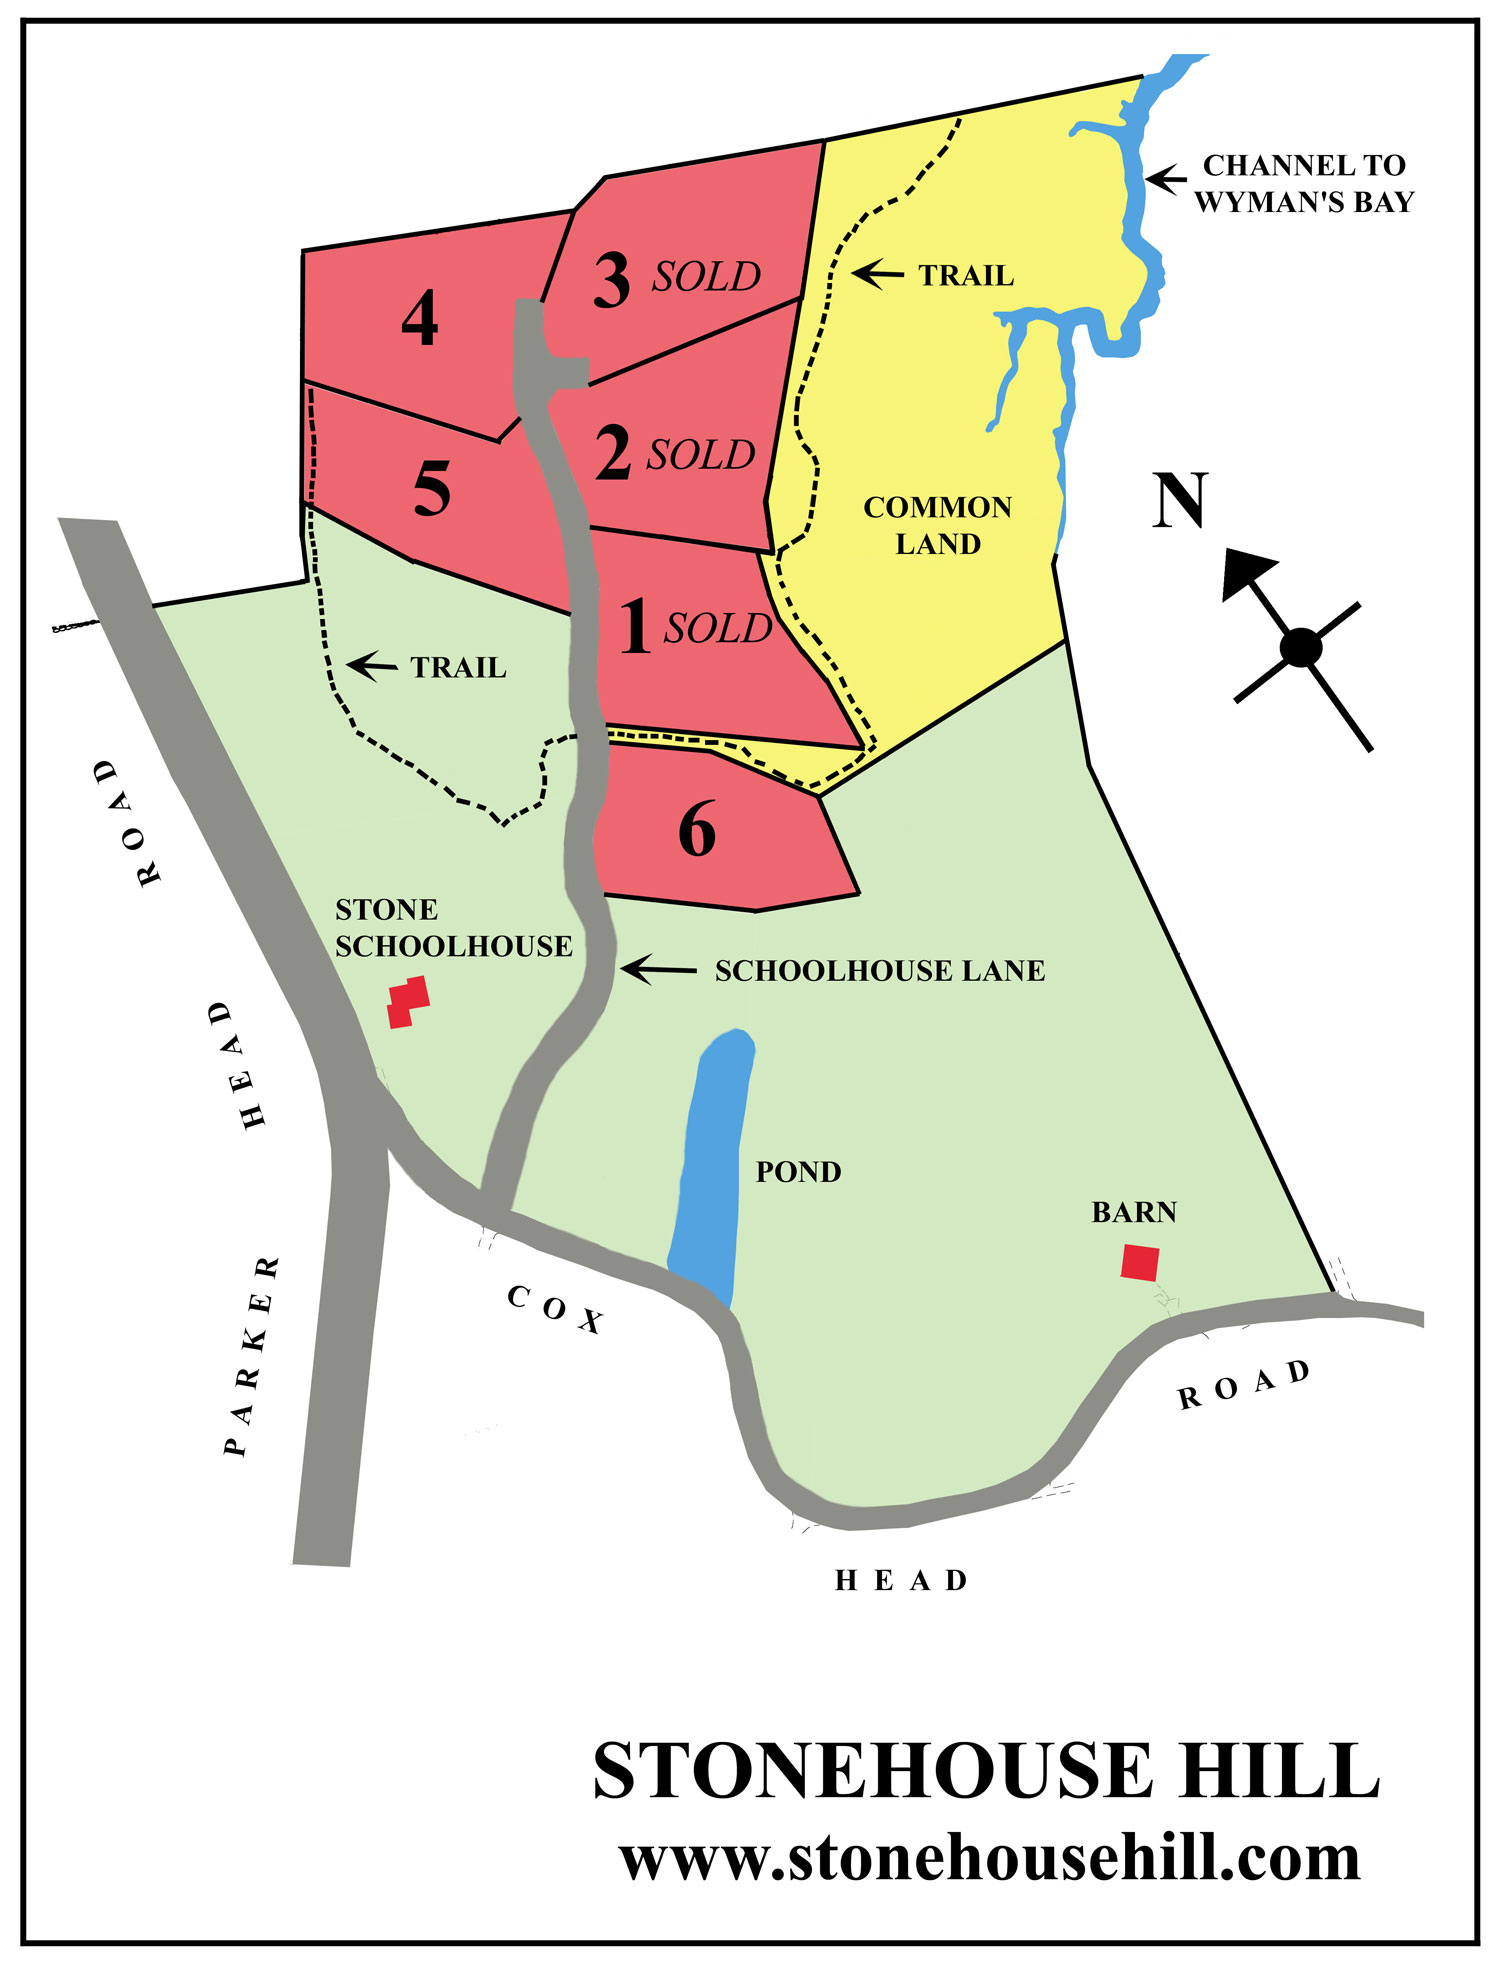 Site Map (Click to enlarge)